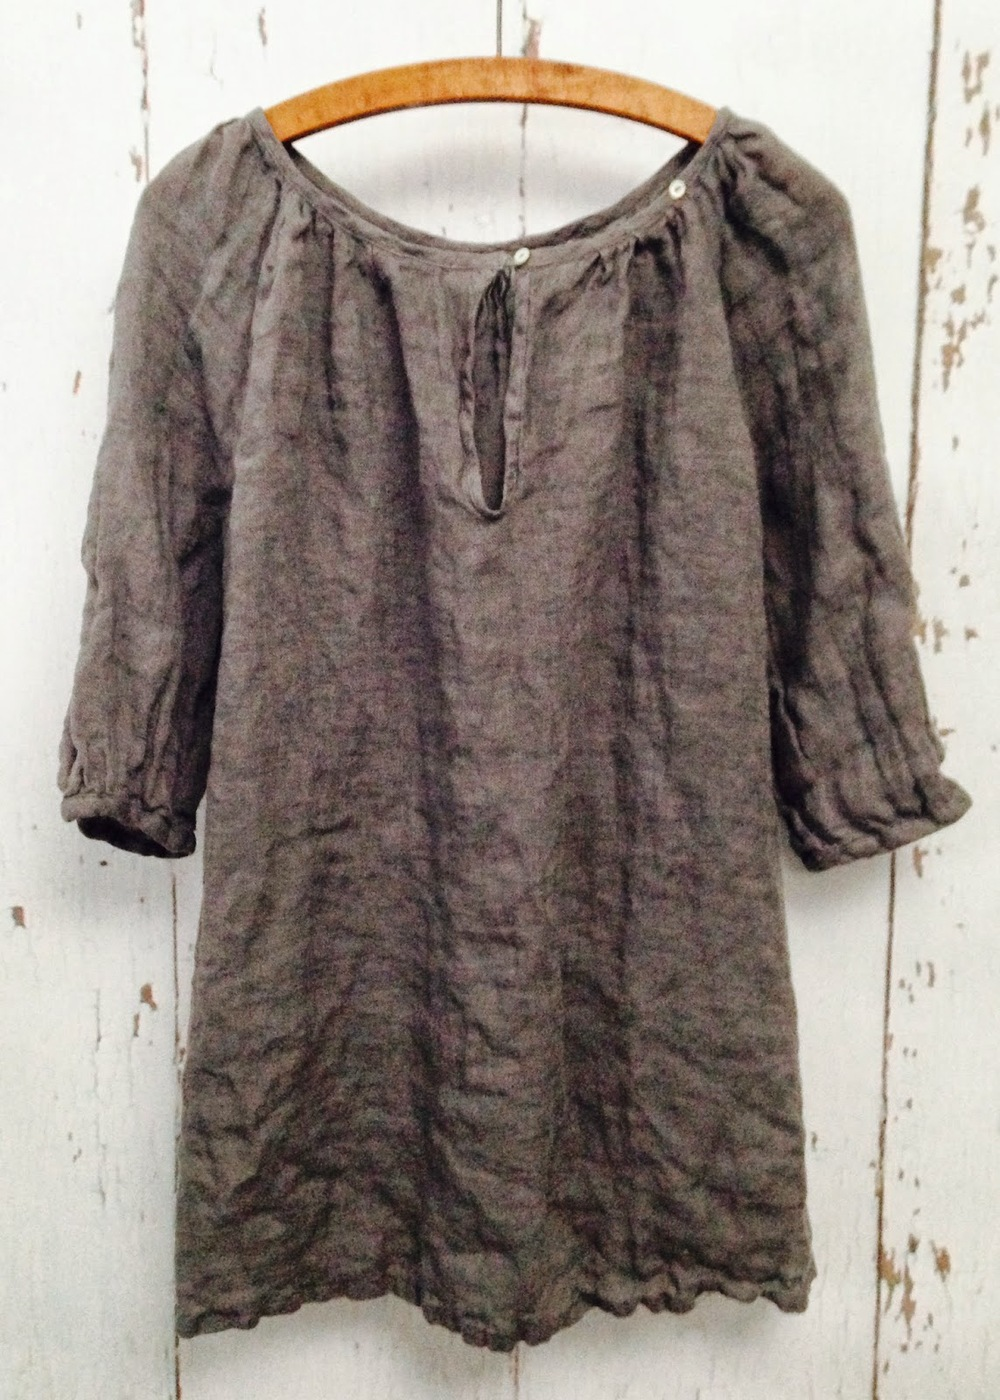 100% linen gathered tunic with two buttons at neckline for a variety of looks